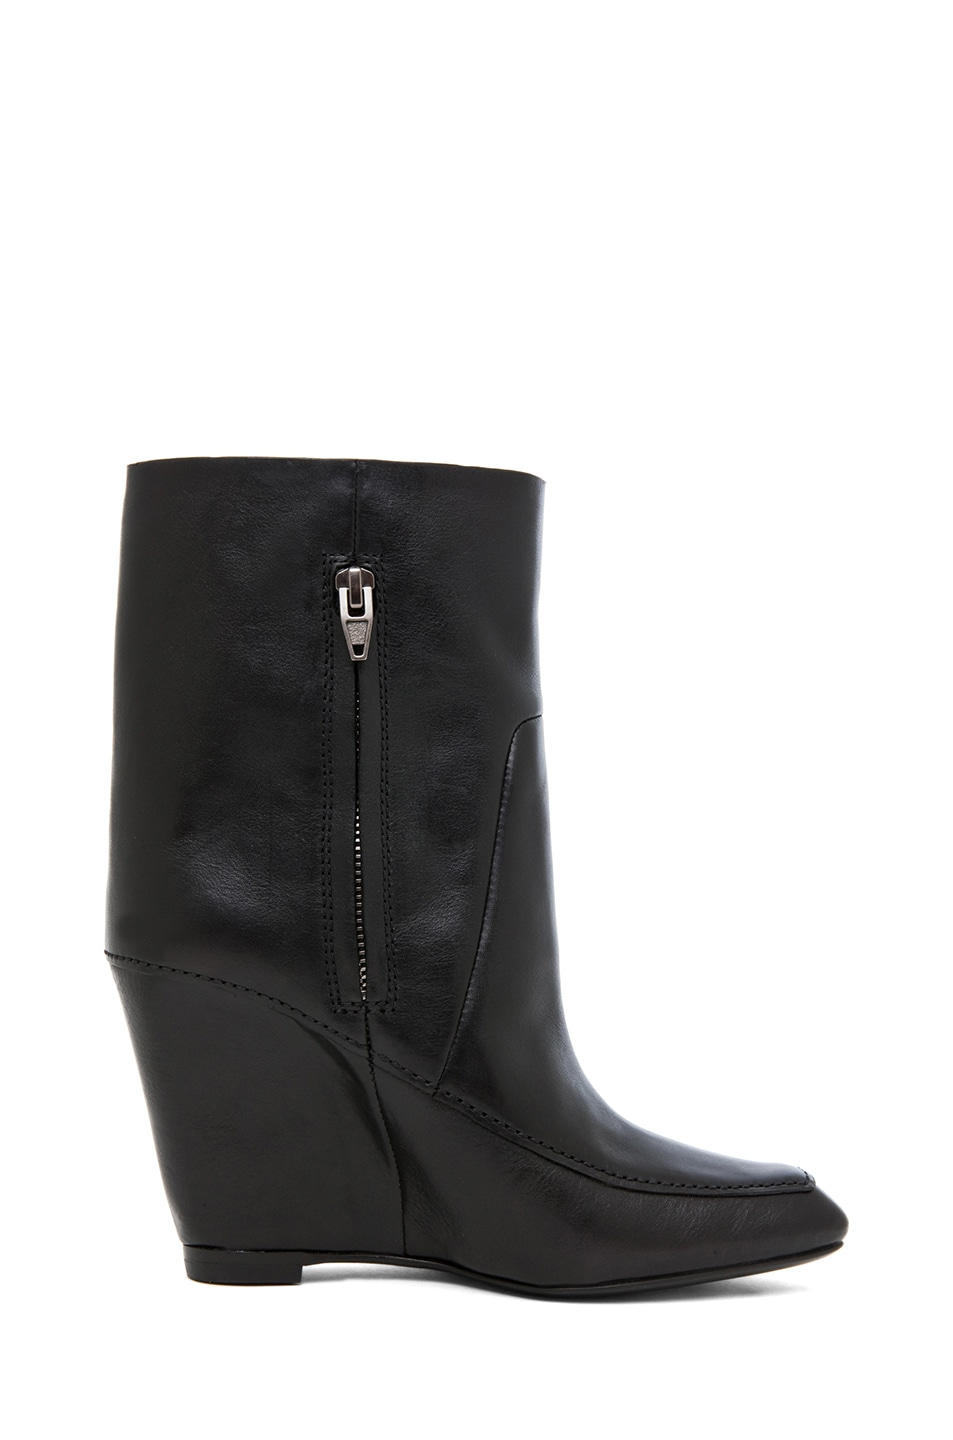 Image 5 of Alexander Wang Cato Leather Wedge Boot in Black